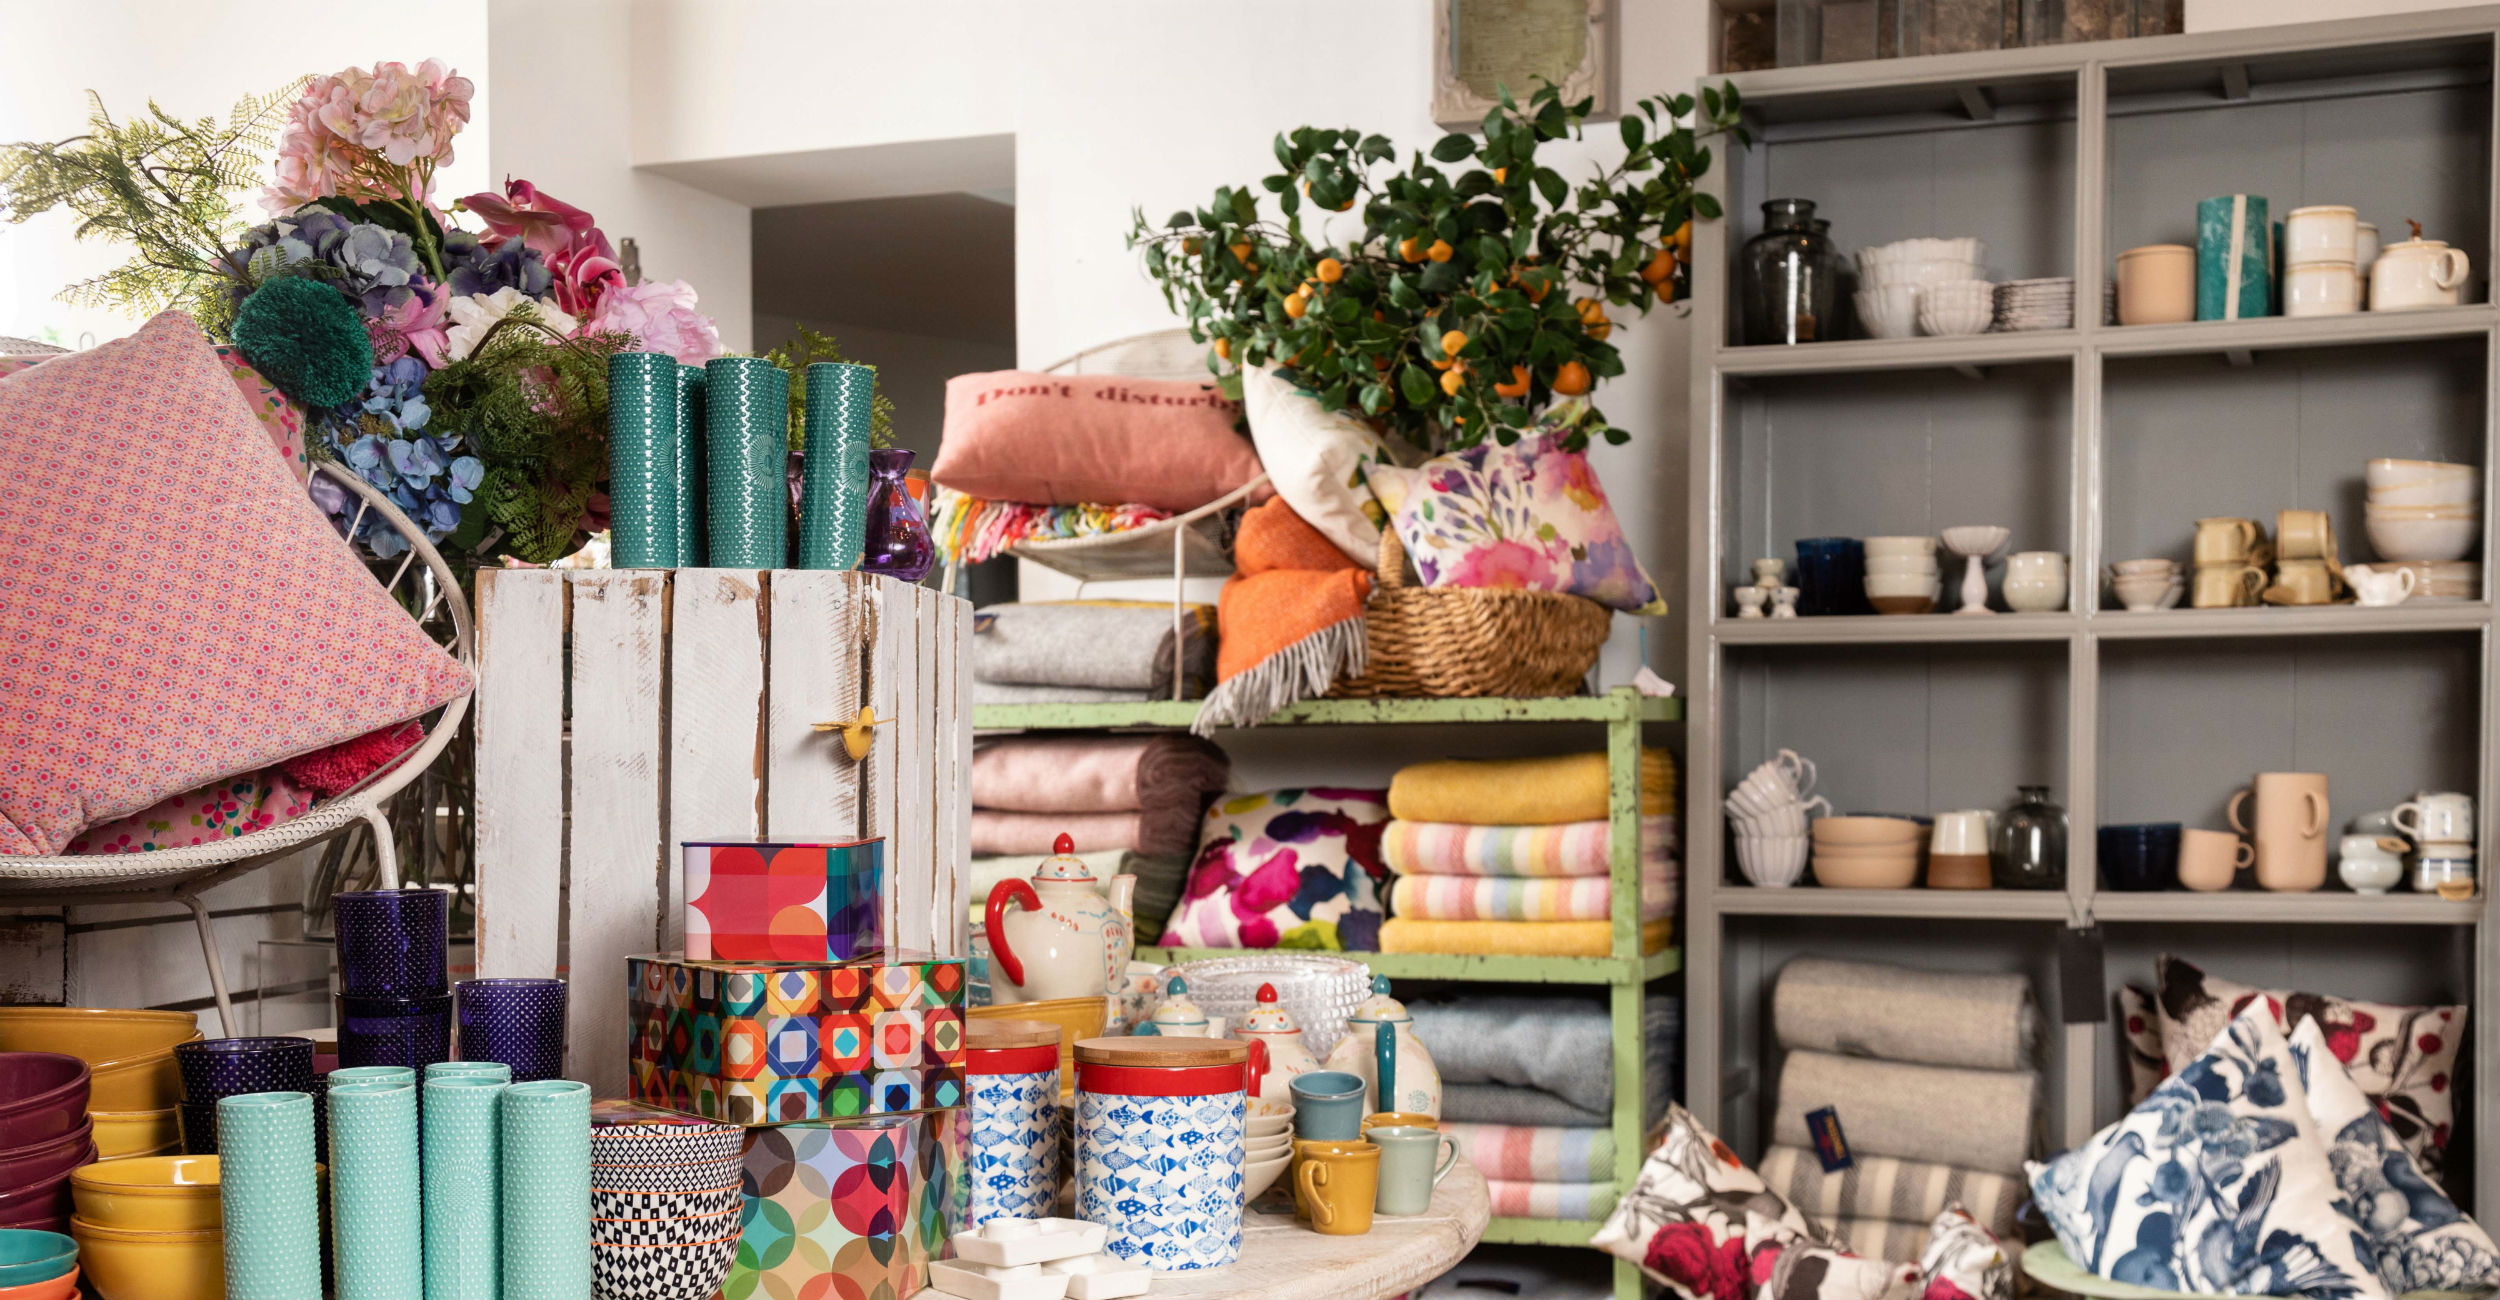 Blog - Best Boutiques to Shop in Edinburgh